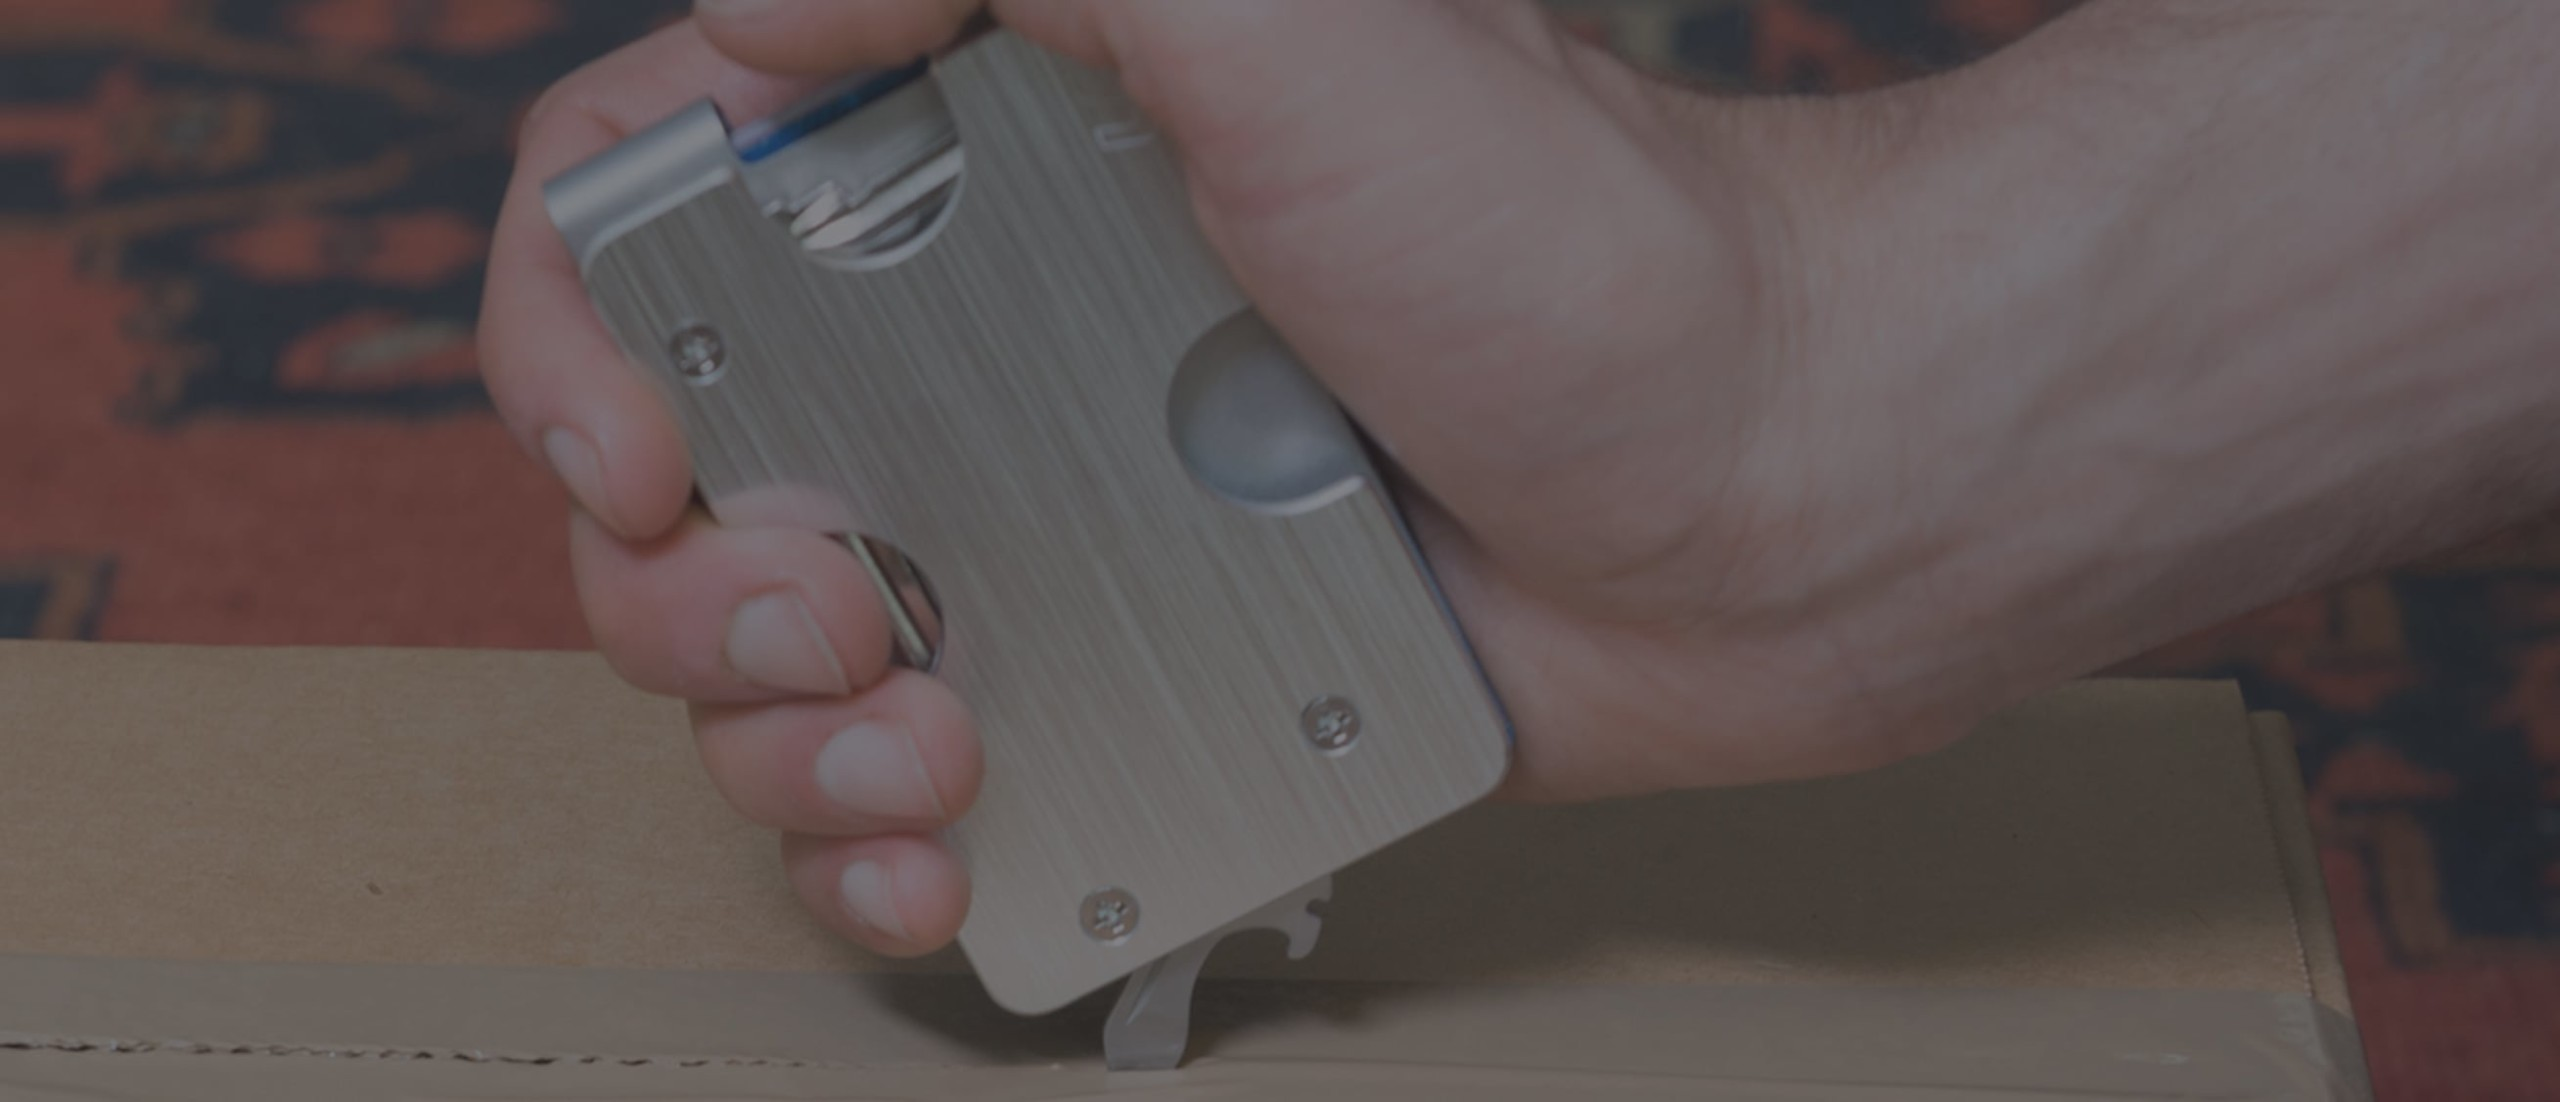 KeyClip 3-in-1 Compact Wallet